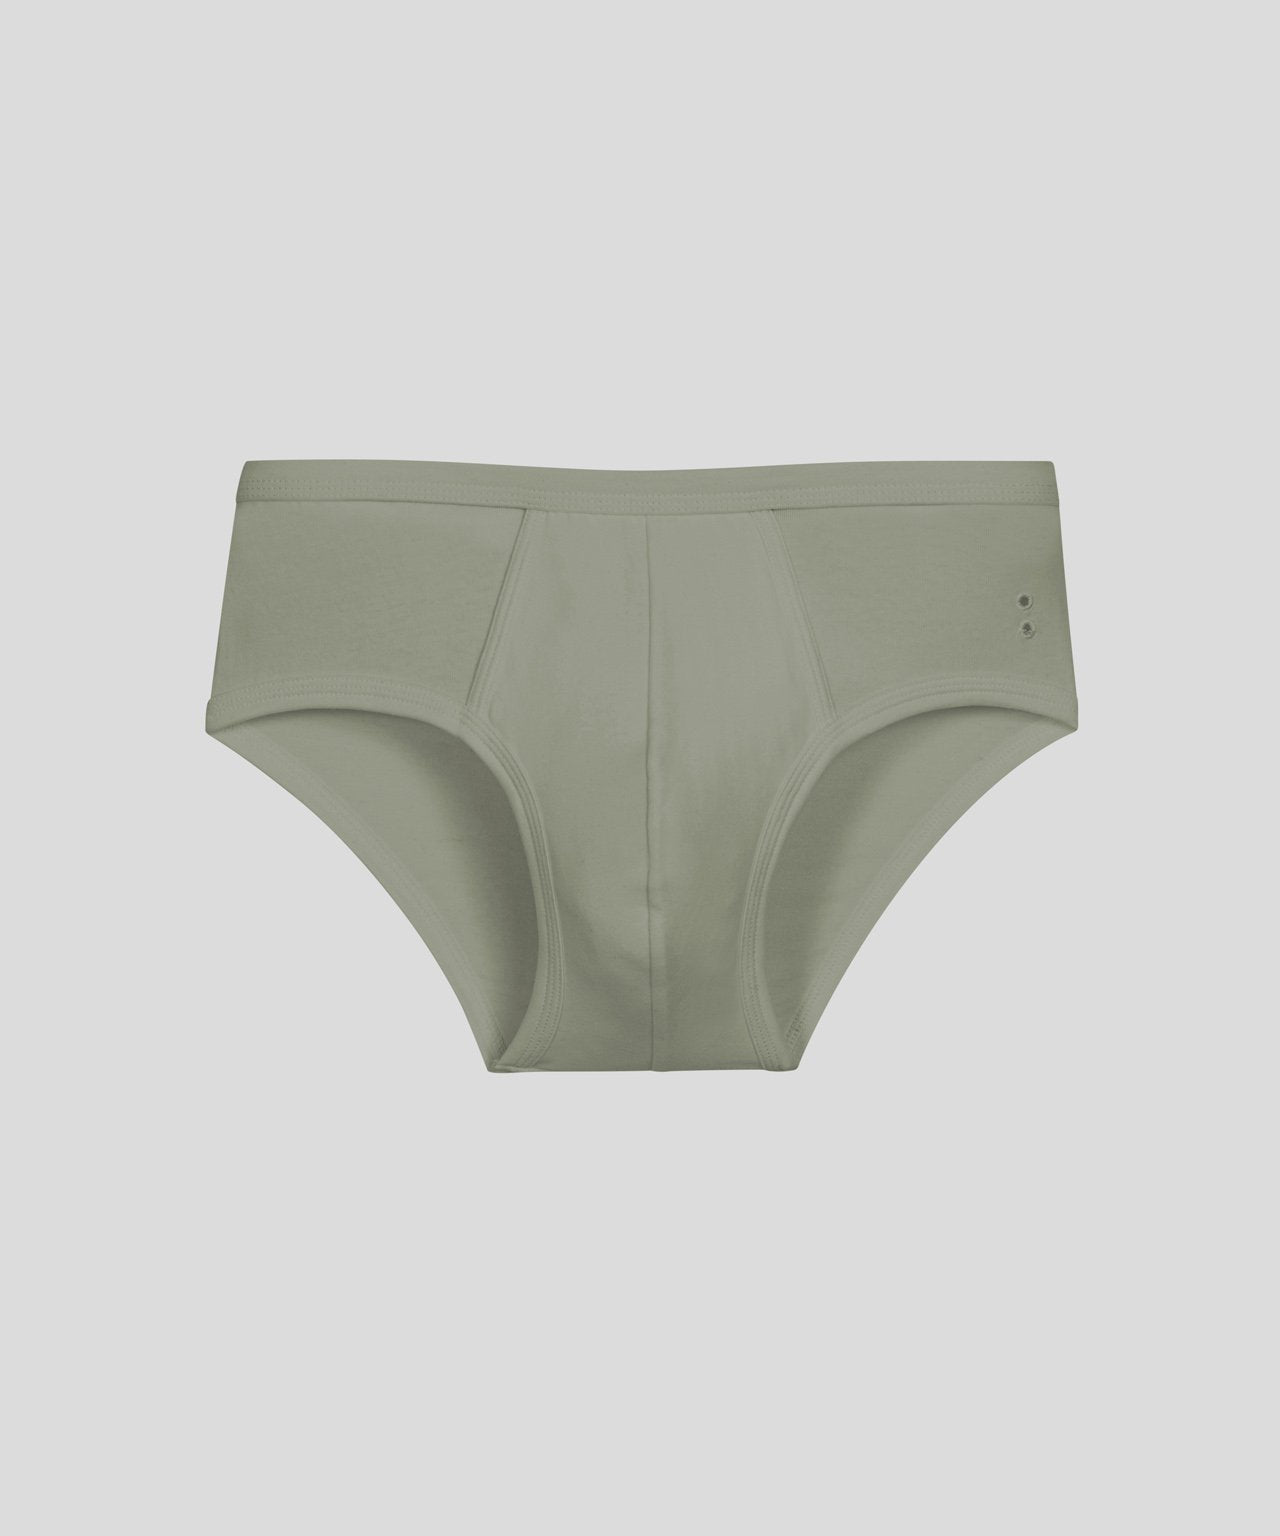 747 Y-Front Briefs Kit - khaki